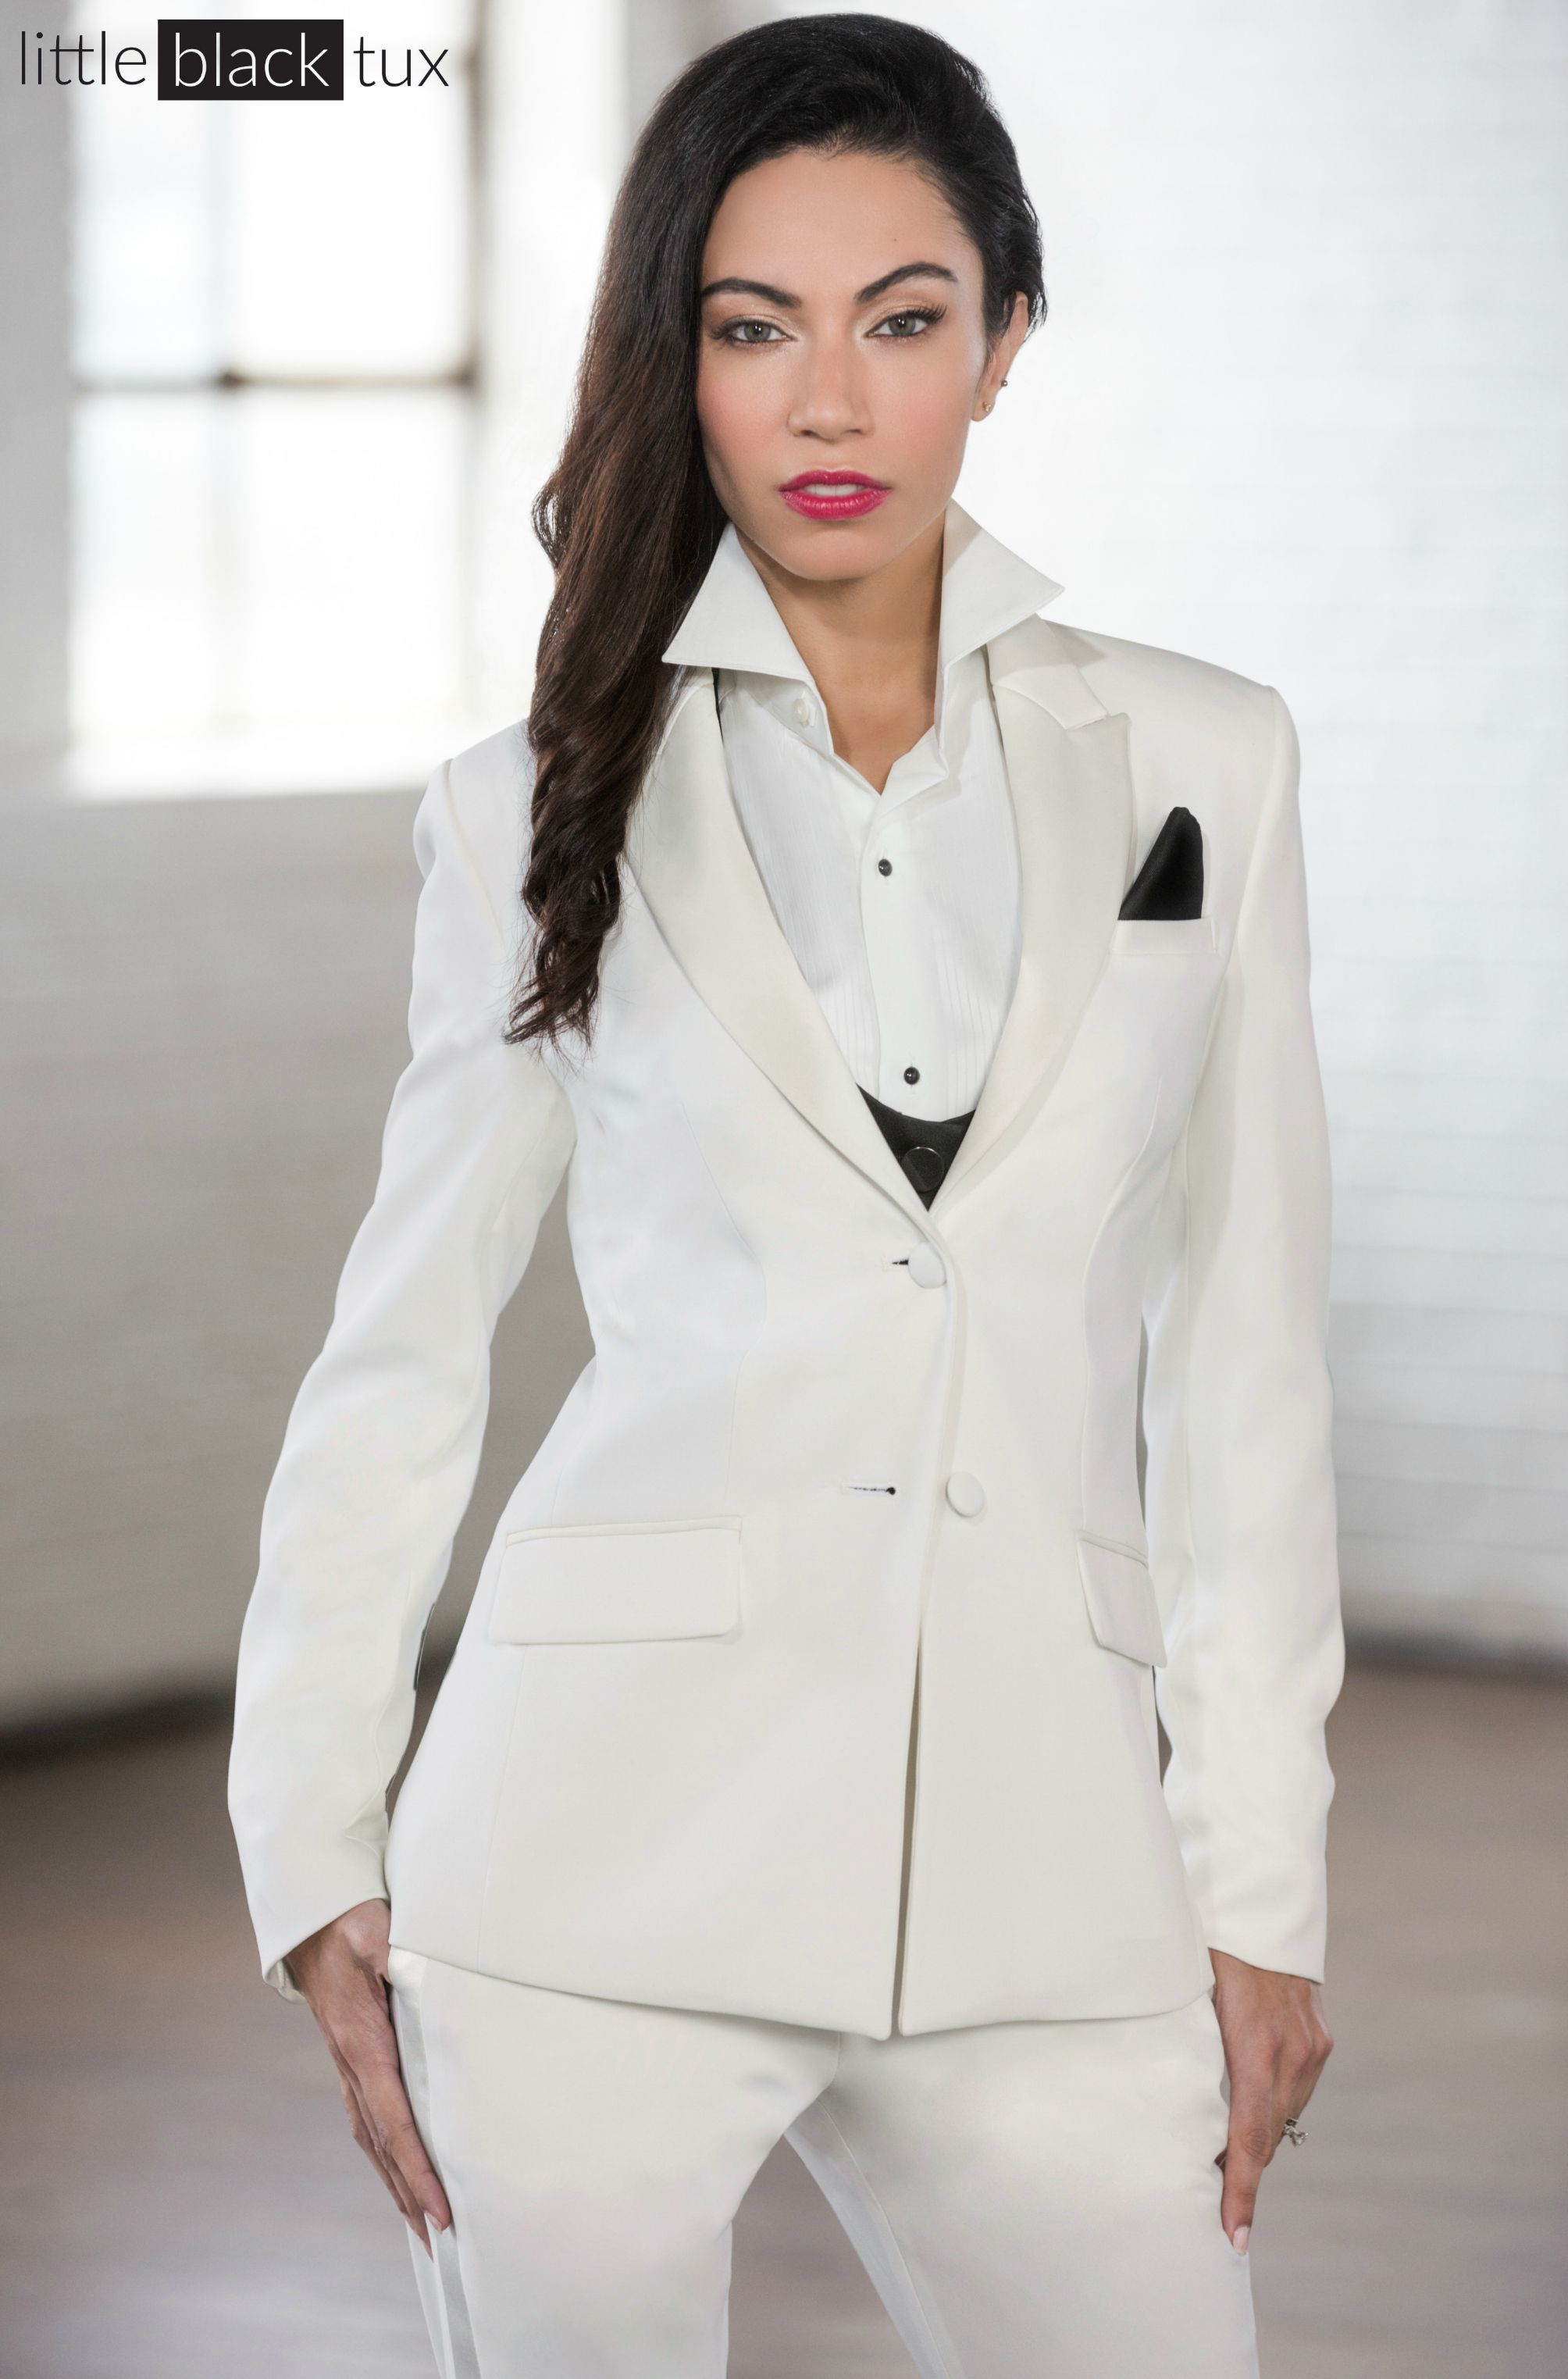 62583a9f22d7b Women s Ivory Diamond White Tuxedo   Ladytux. Peak Lapel